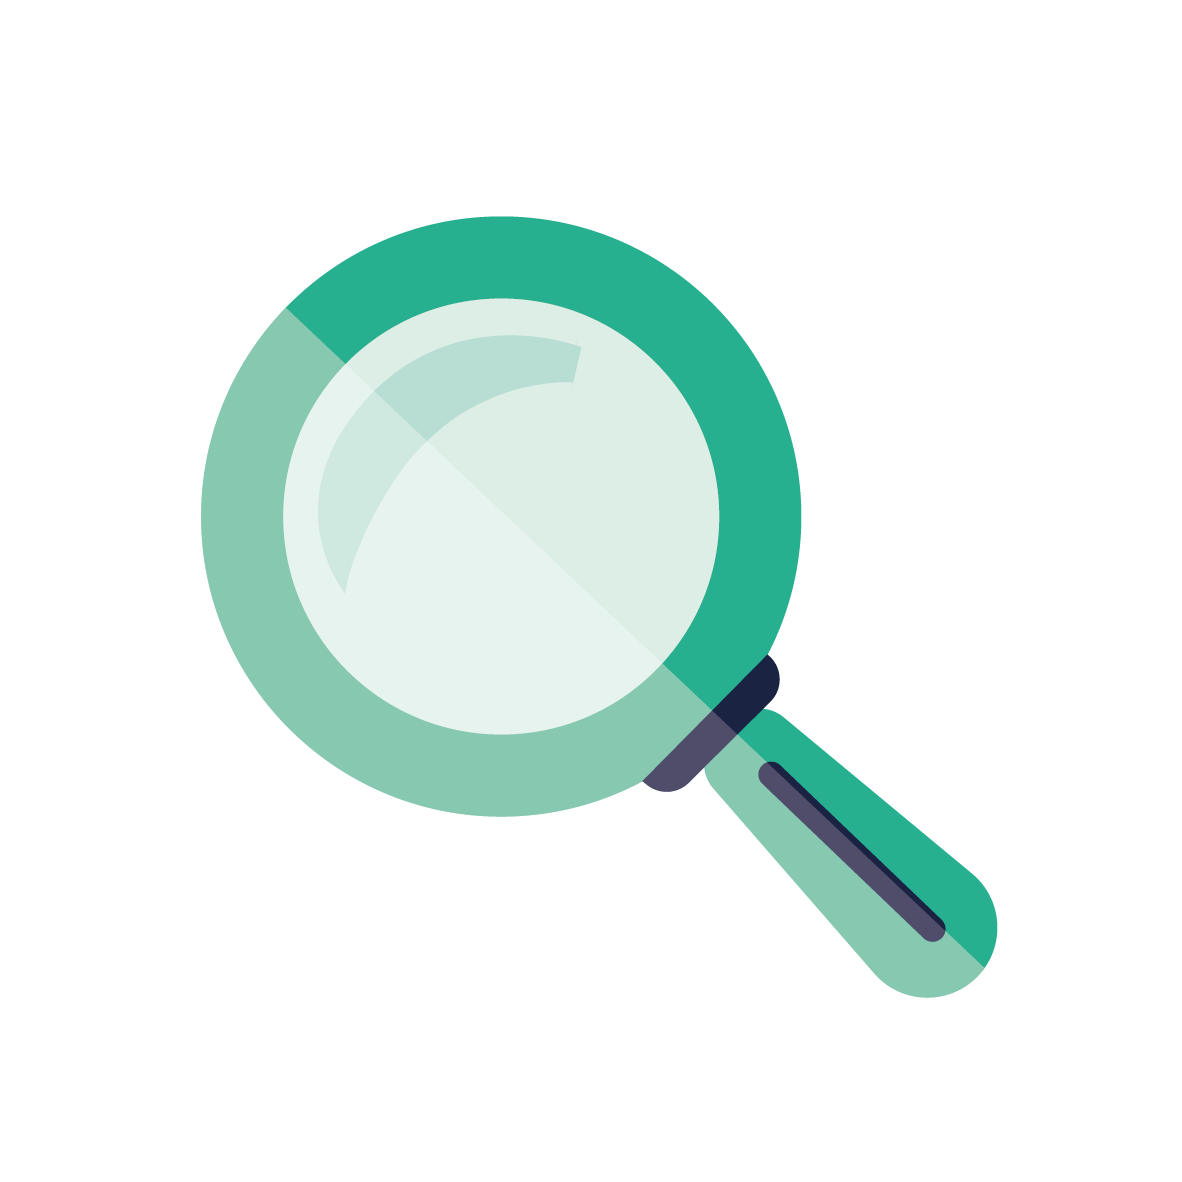 Icons_Magnifying Glass.png